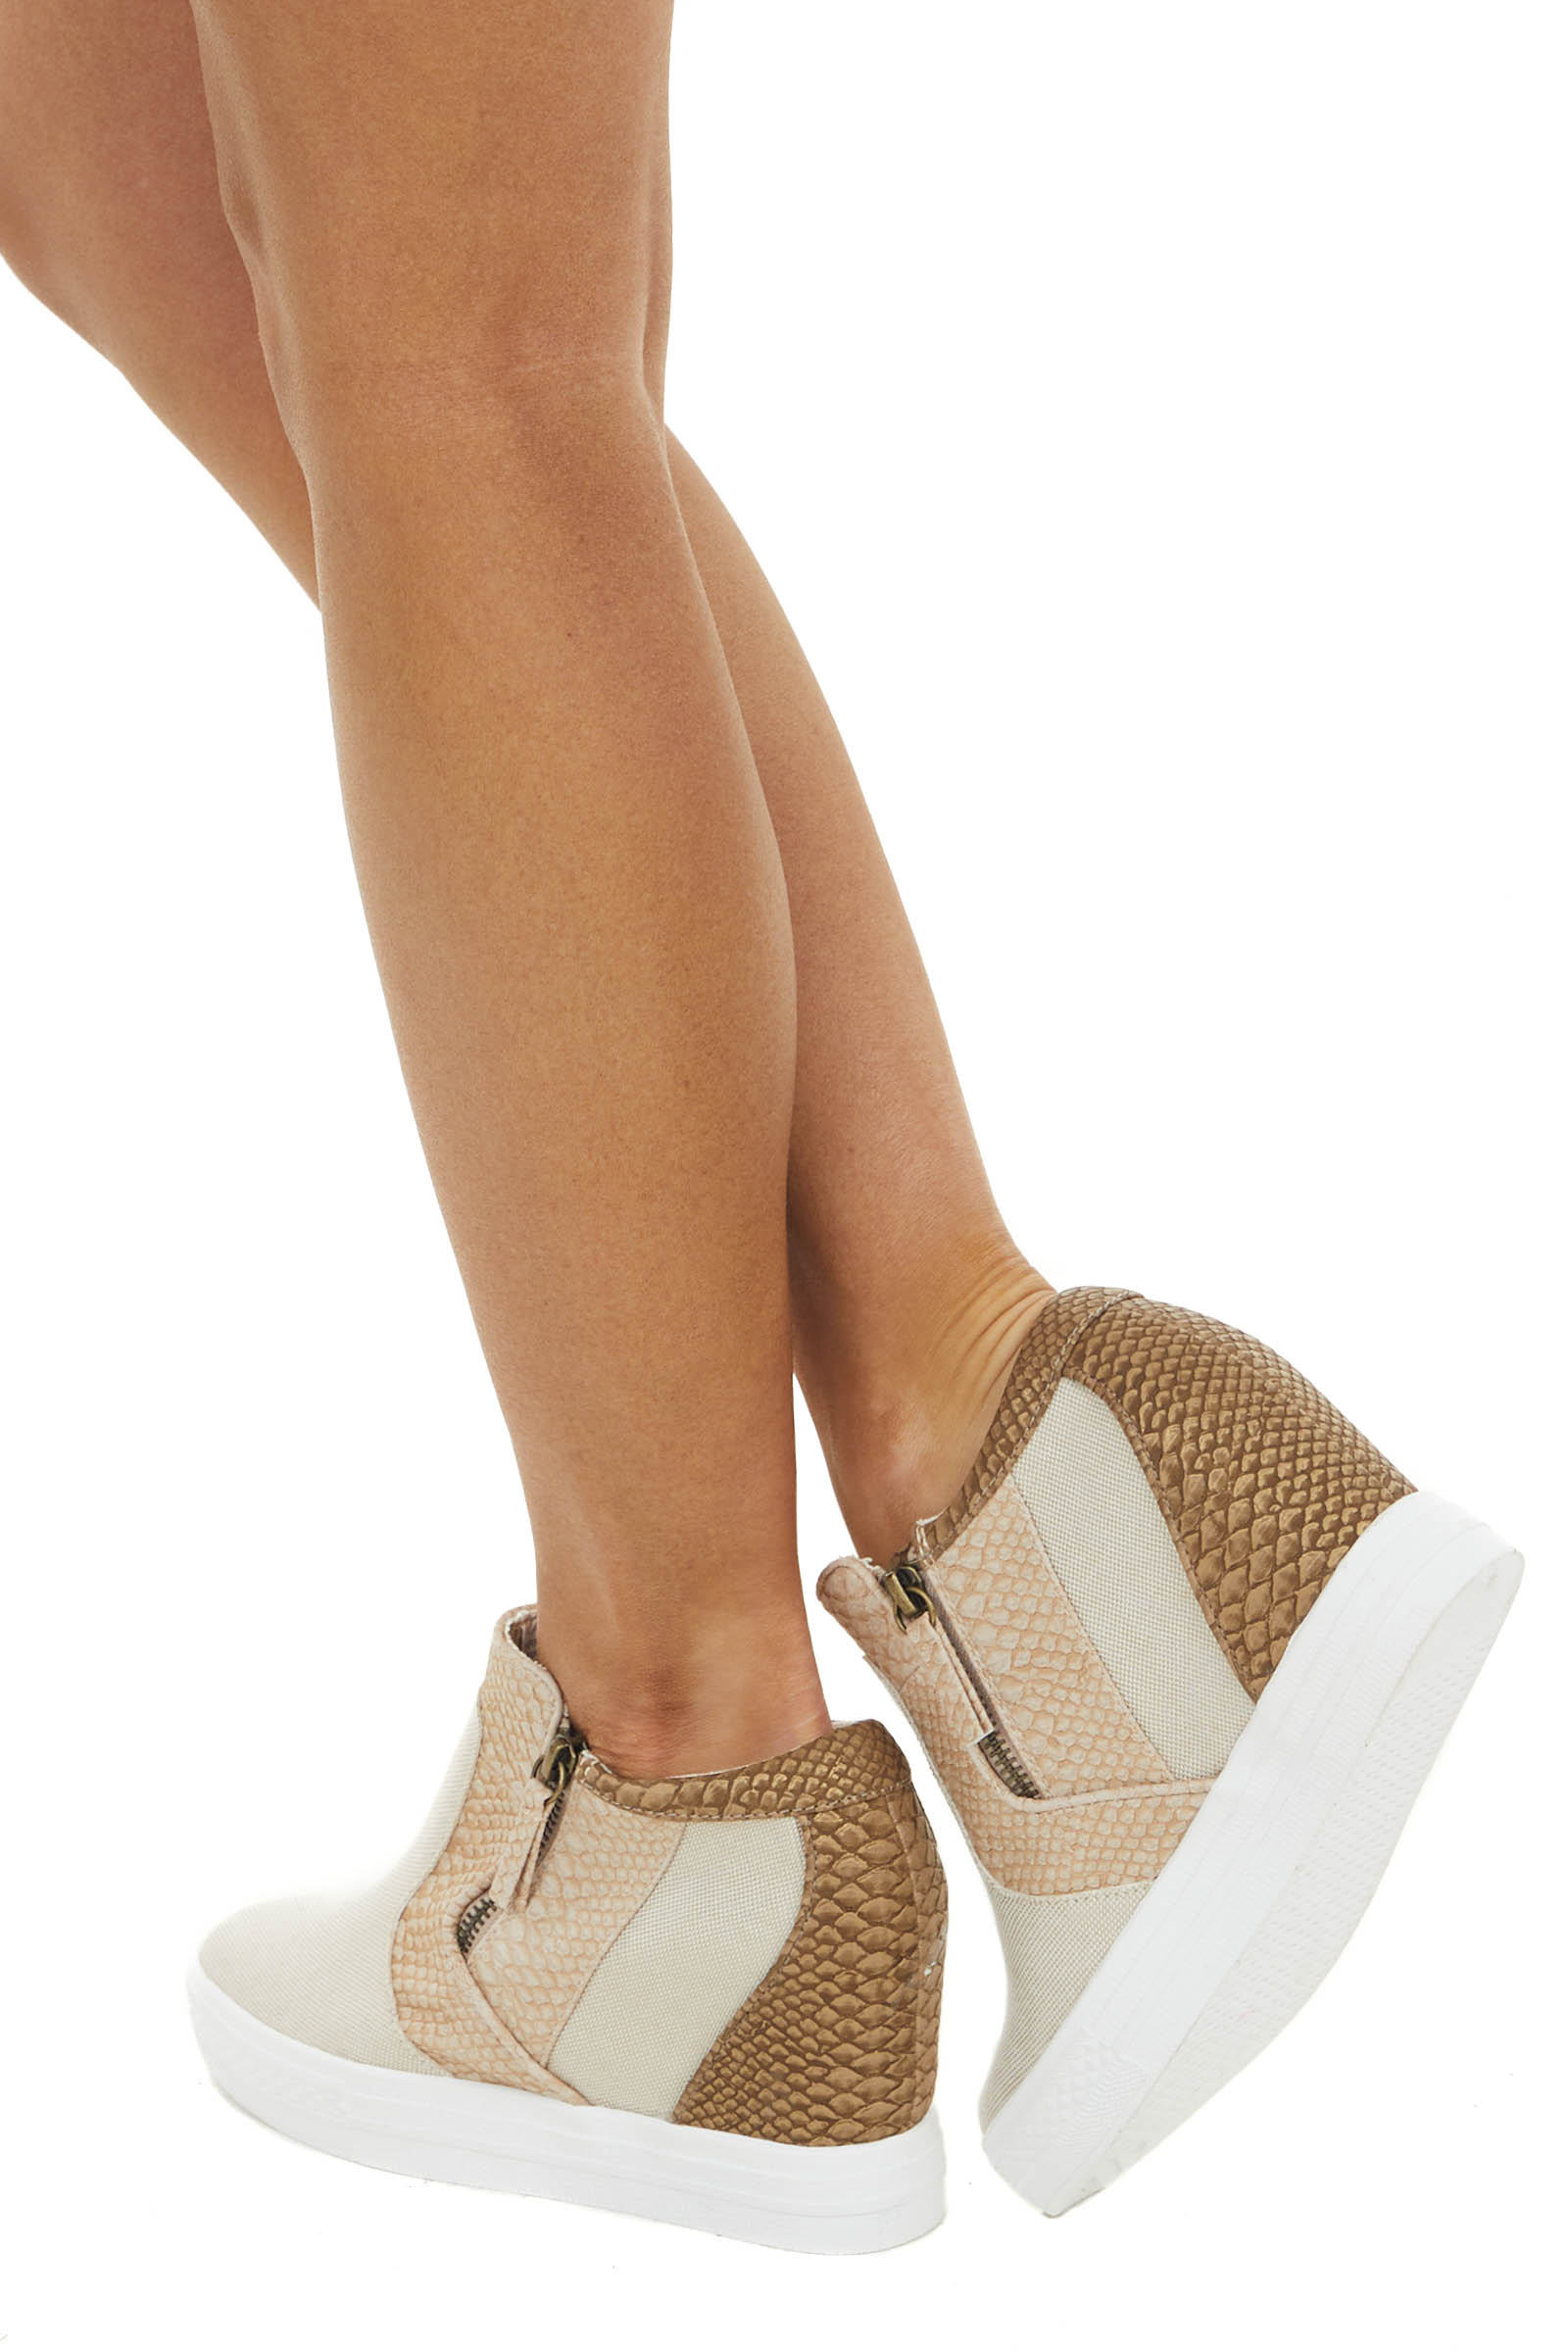 Beige and Snakeskin Print Wedge Sneakers with Dual Zippers